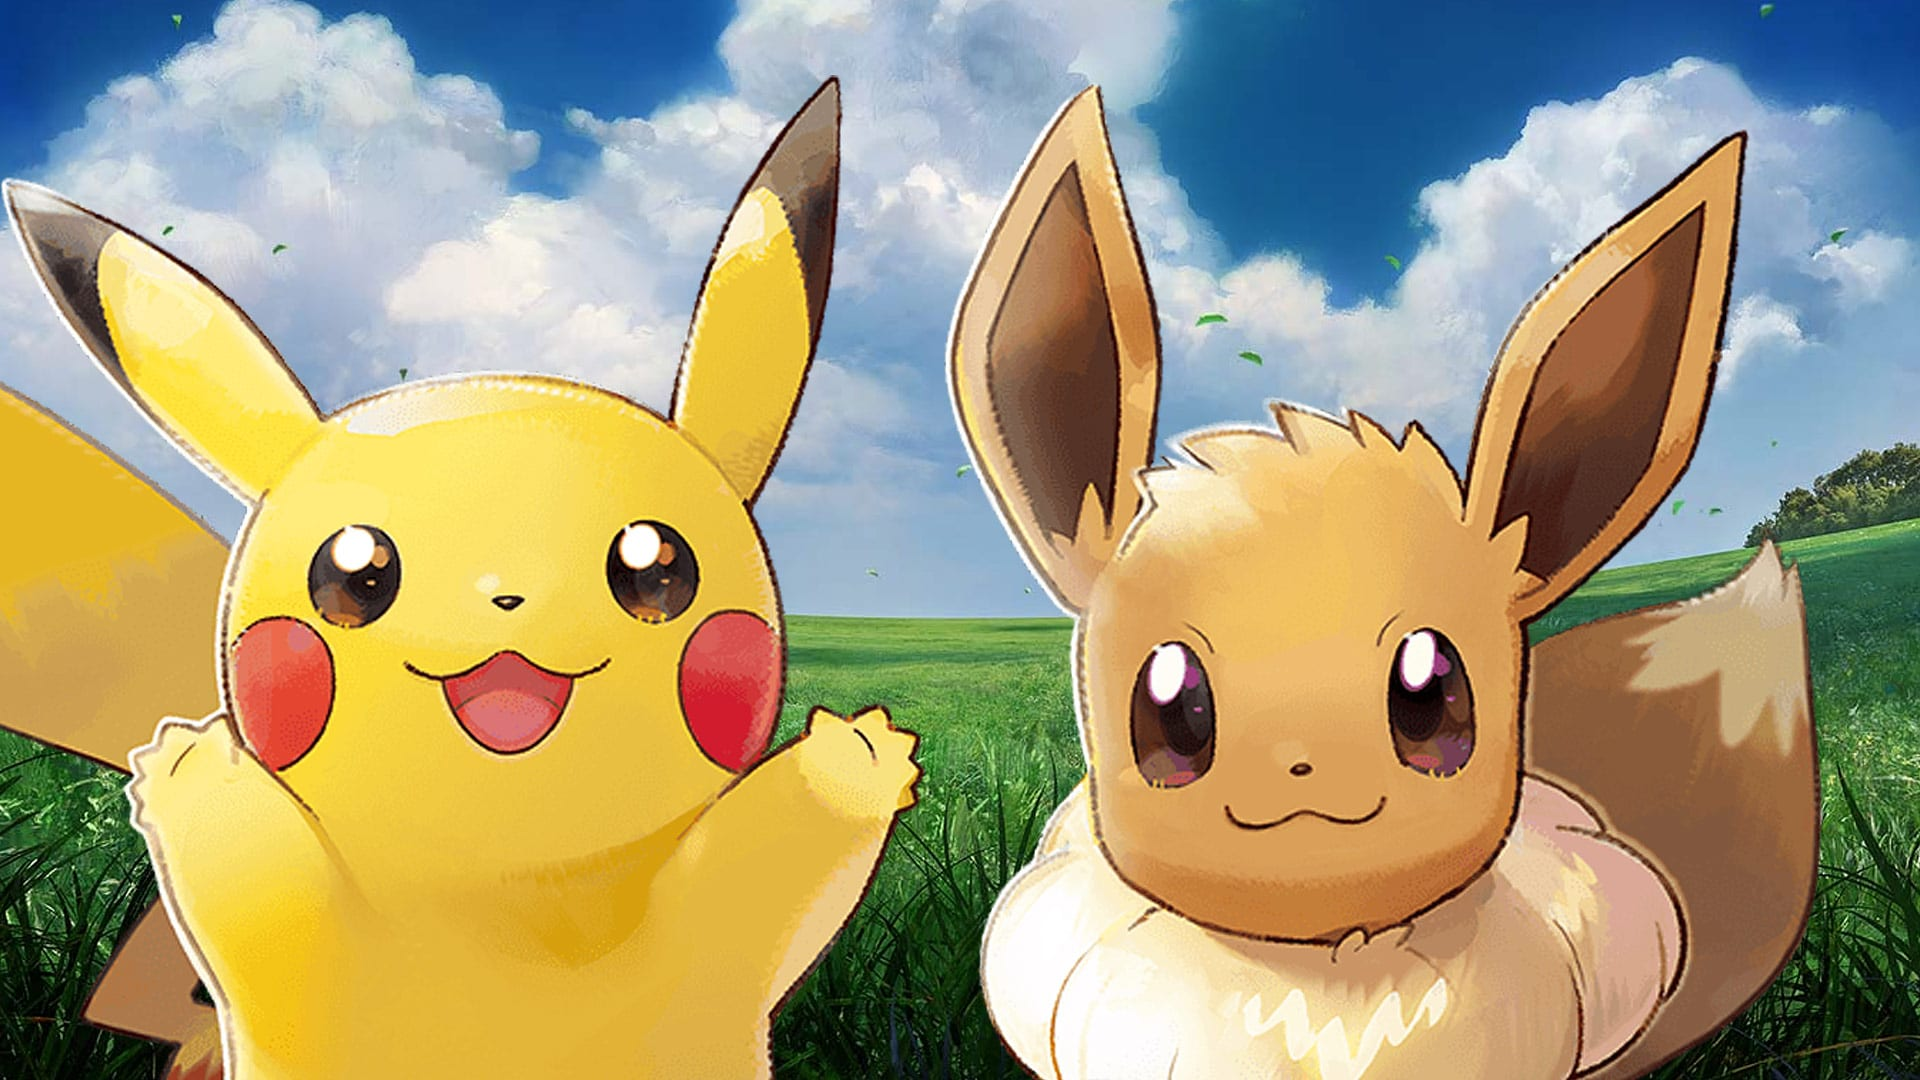 Pokemon Let S Go Pikachu And Let S Go Eevee Introduce Master